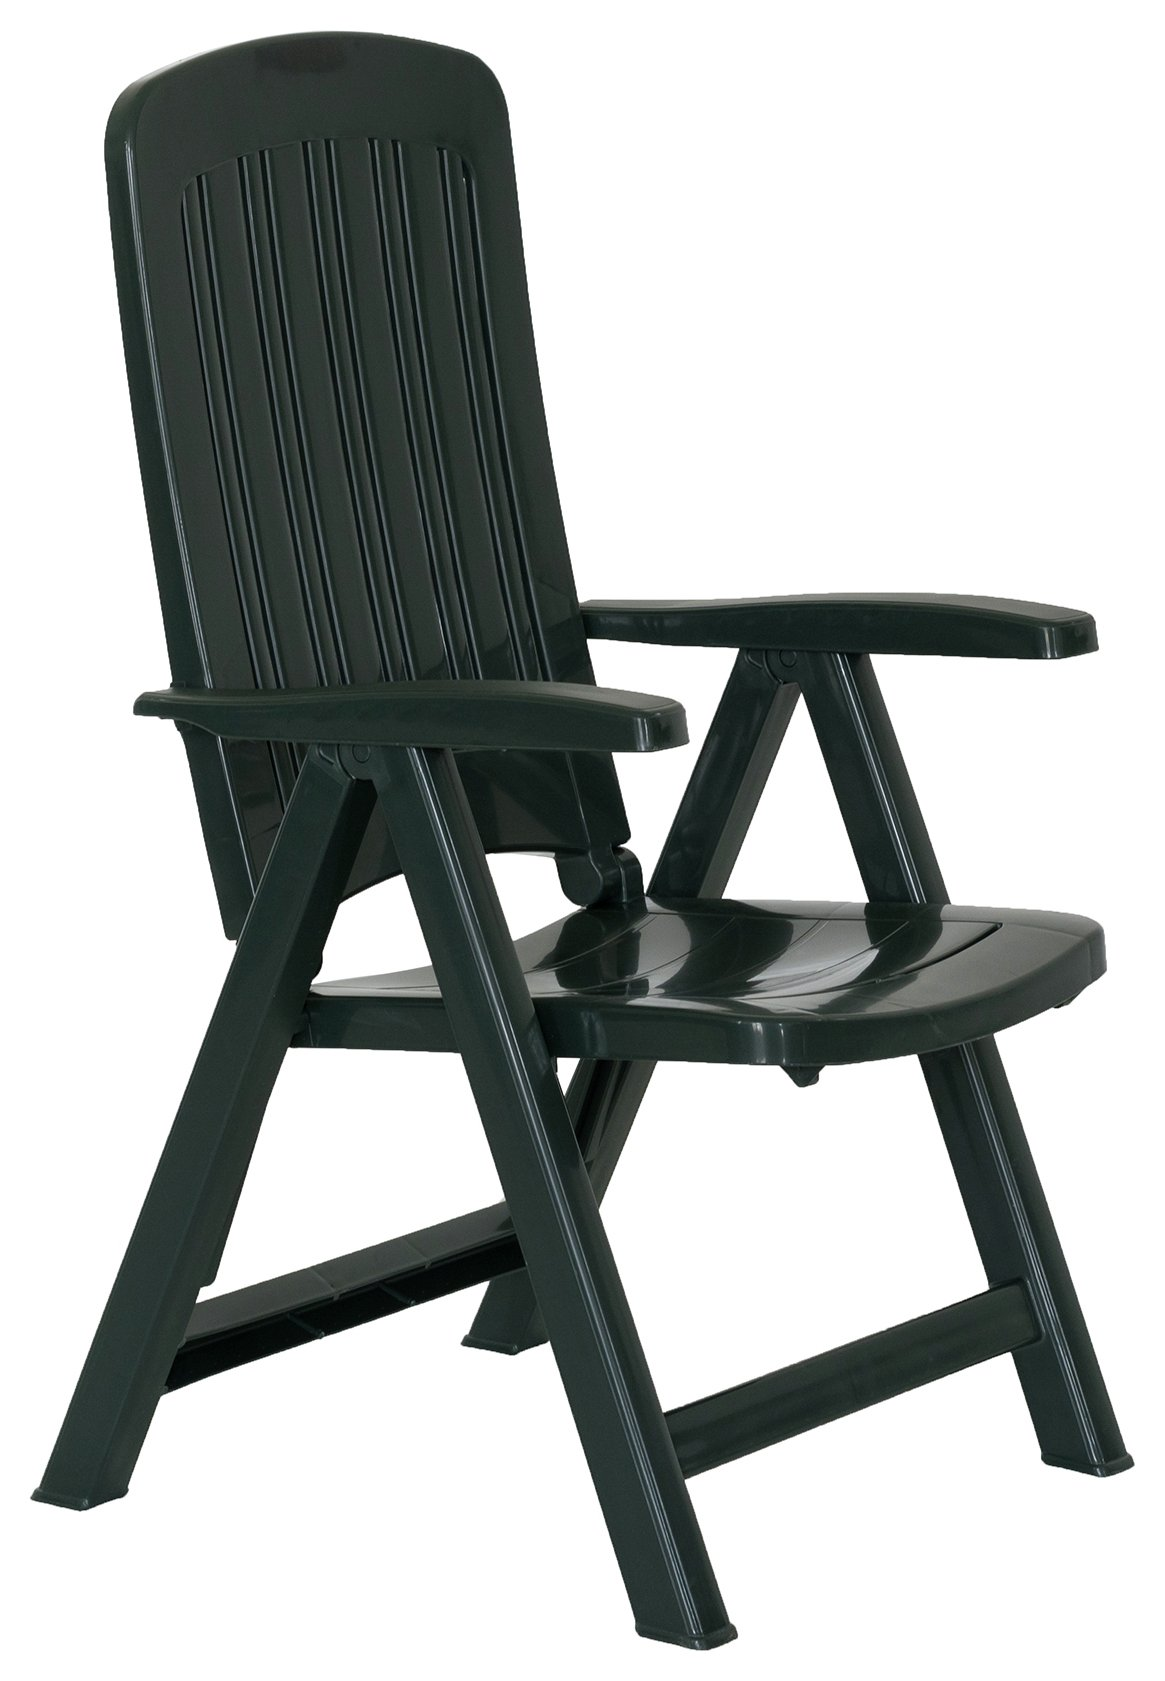 HOME Recliner Chair - Cayman Green  sc 1 st  Argos & Buy HOME Recliner Chair - Cayman Green at Argos.co.uk - Your ... islam-shia.org